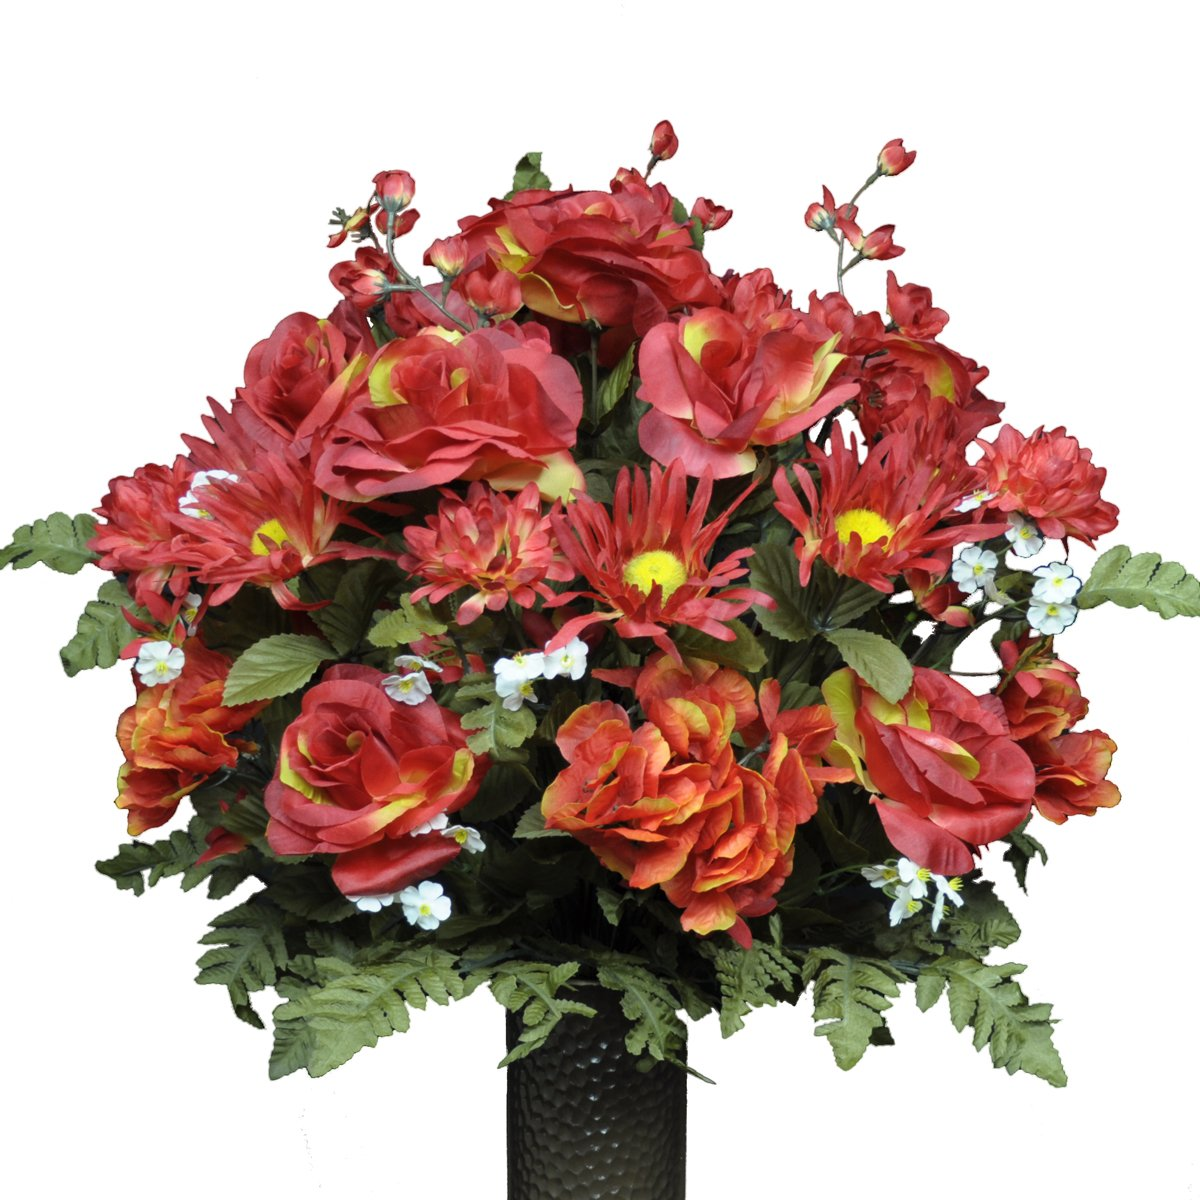 Stay-In-The-Vase-Artificial-Cemetery-Flowers-for-Outdoor-Grave-Decorations-Fire-Red-Rose-and-Hydrangea-Mix-Fake-Flowers-Non-Bleed-Colors-and-Design